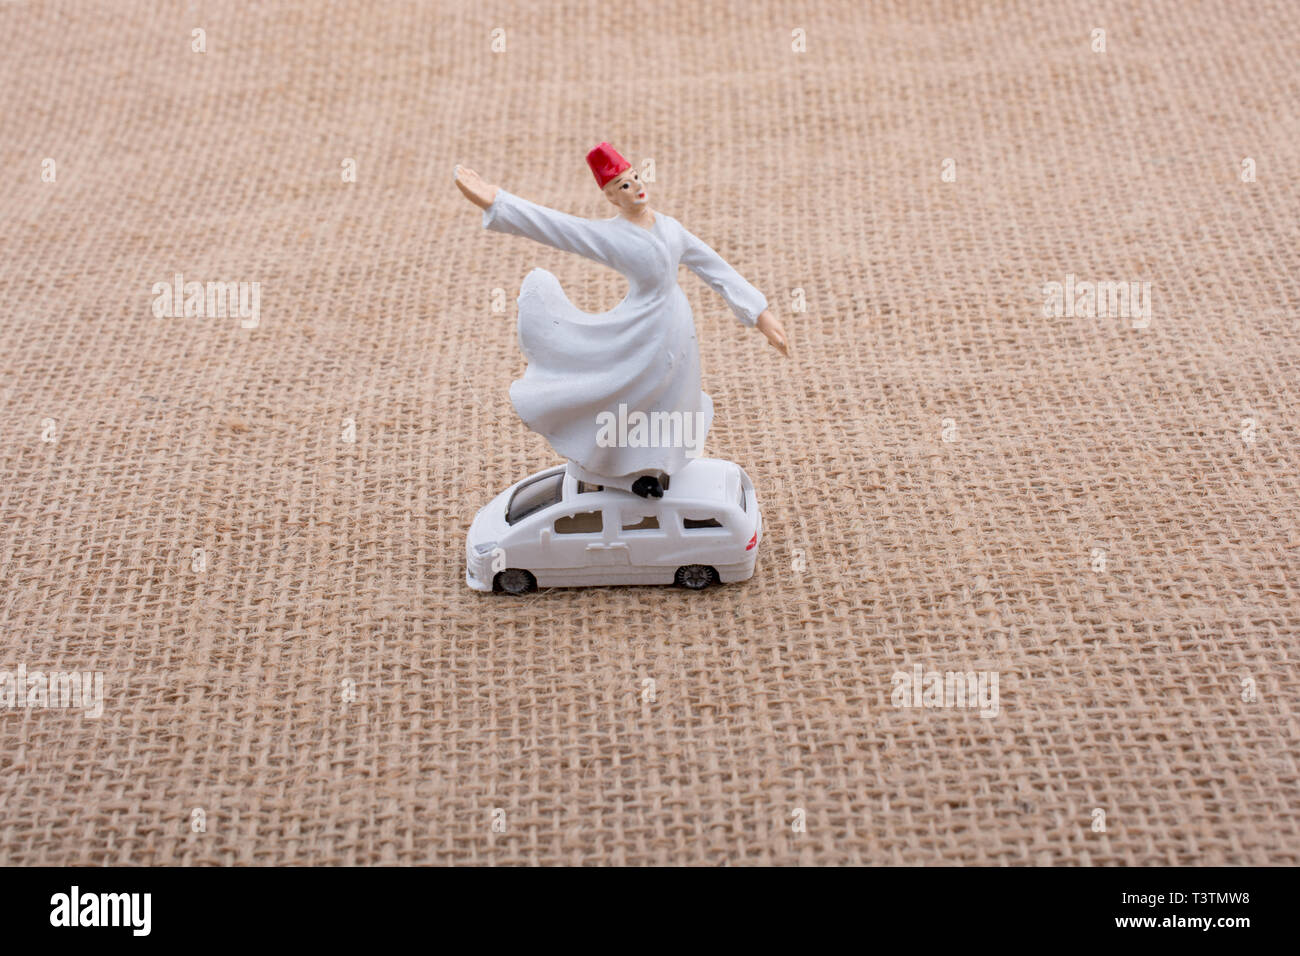 Sufi Dervish figurine model in small size in view - Stock Image